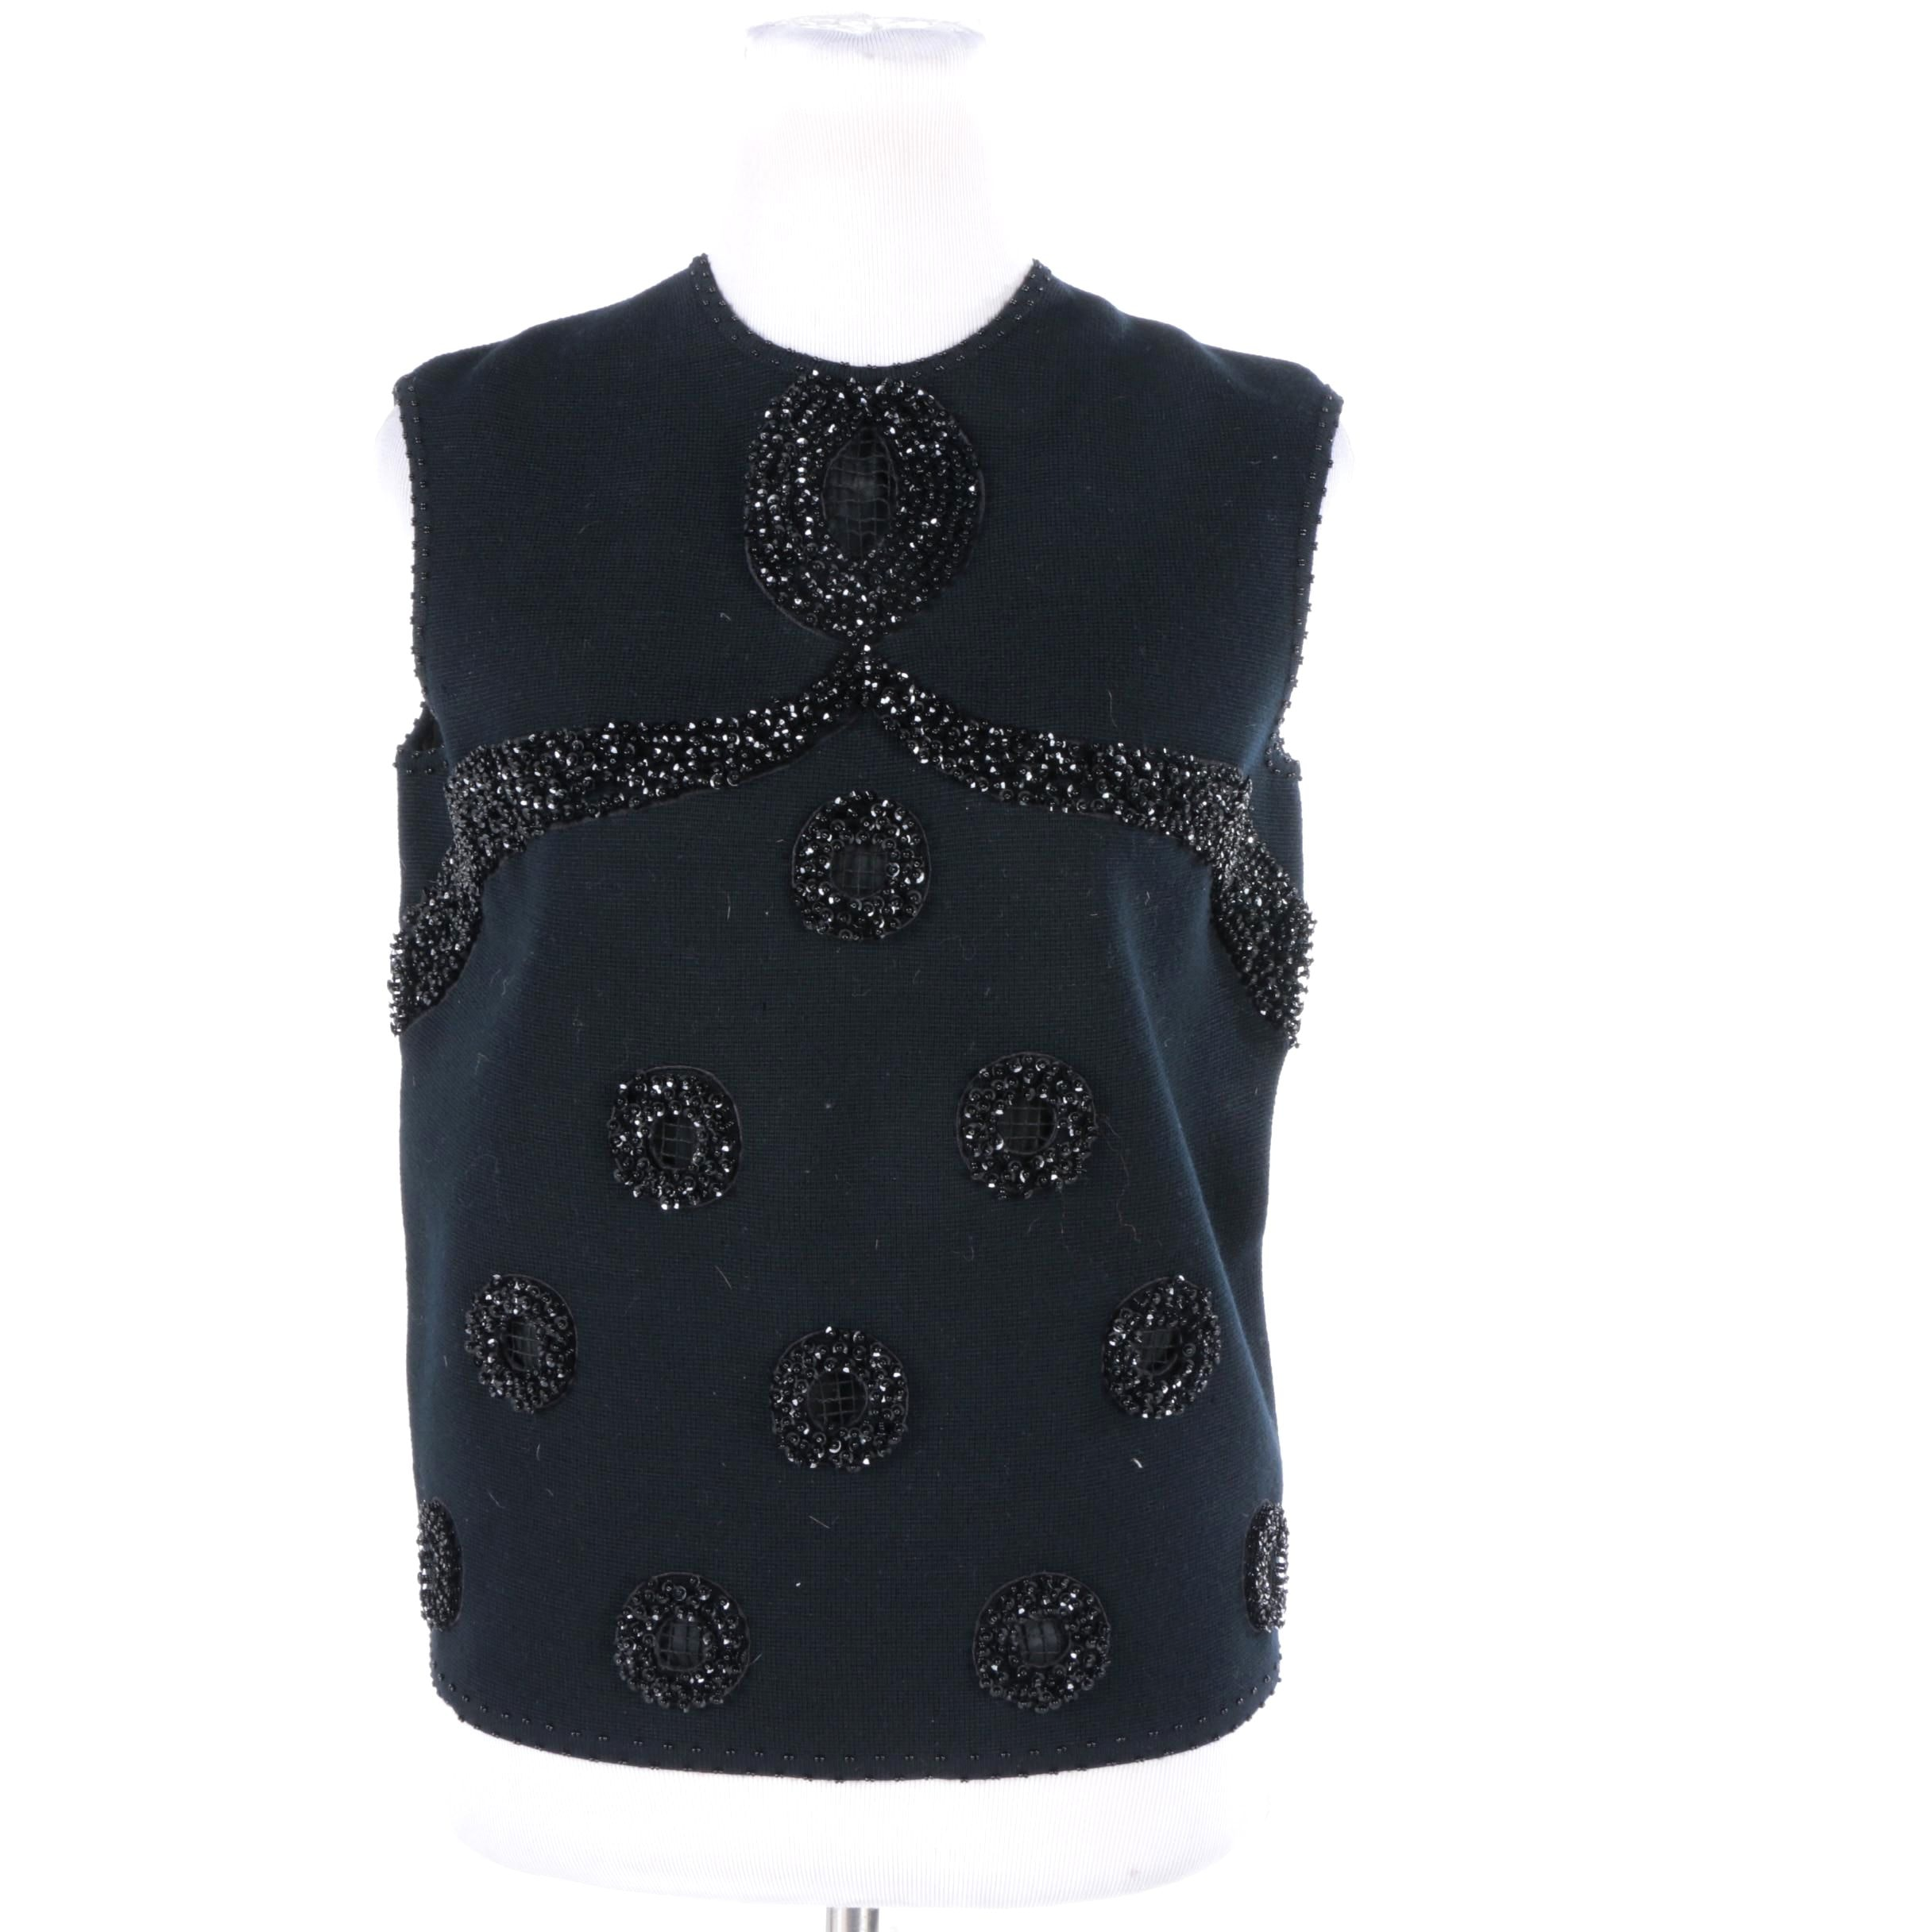 Women's Vintage Hand Beaded Black Wool Sleeveless Top